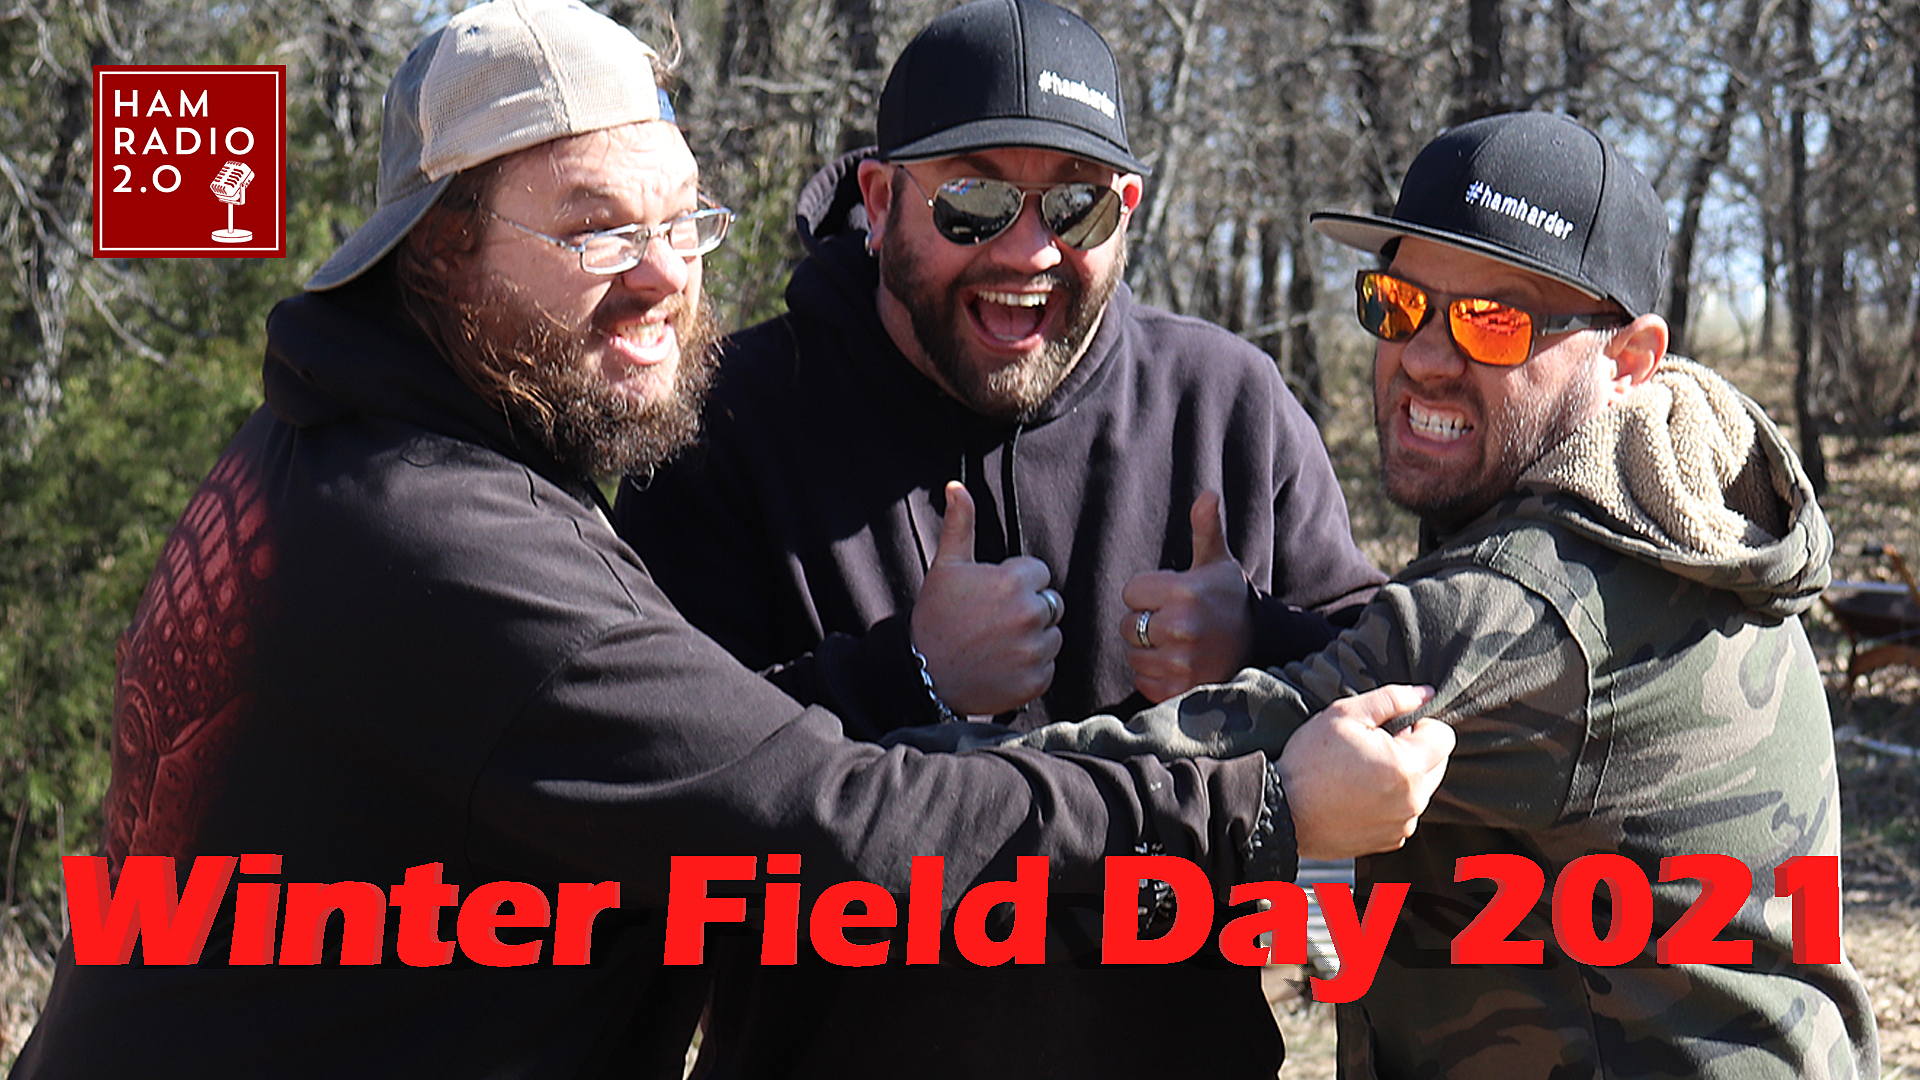 Episode 548: Winter Field Day 2021 with K8MRD, a BuddiHex and a DX Commander